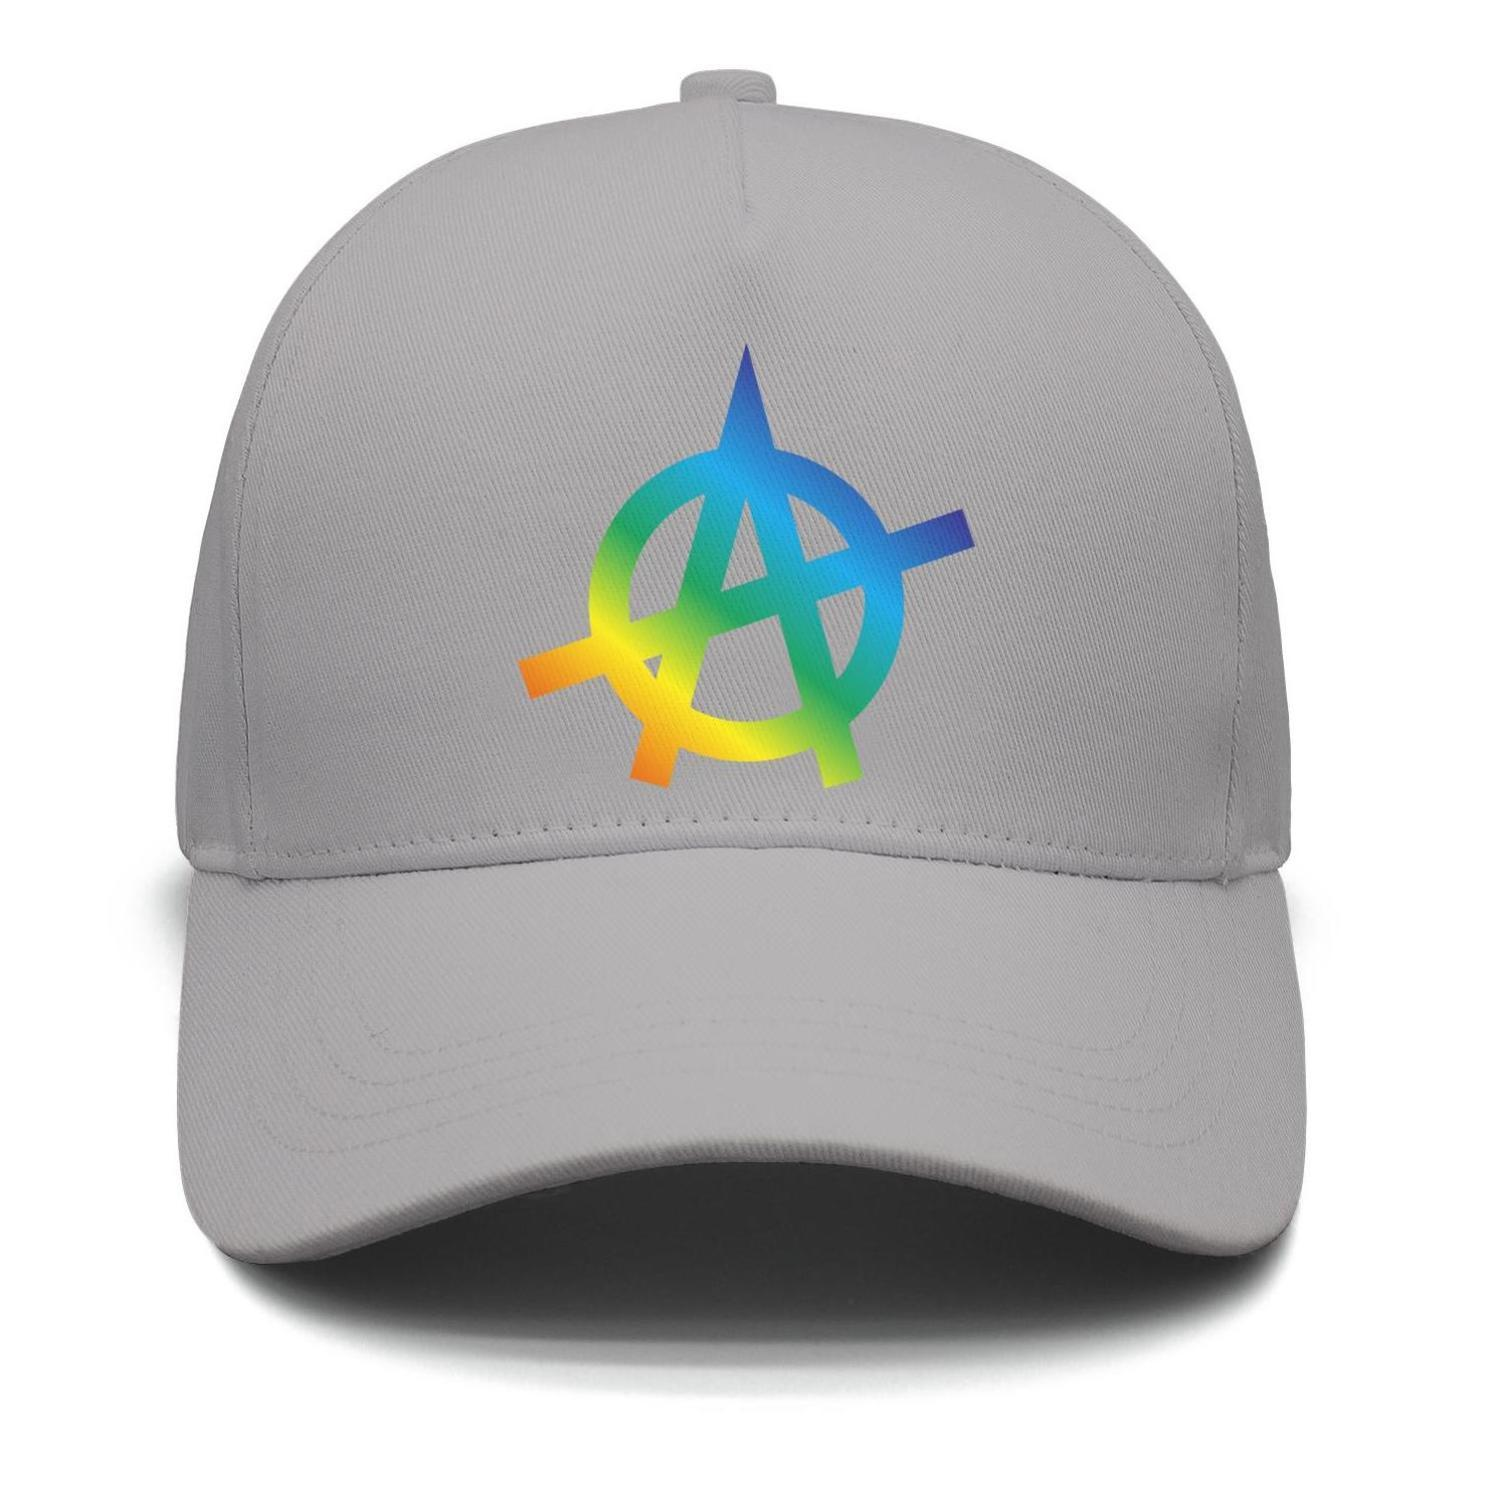 9a69ae460 Sons of Anarchy Gay pride rainbow logo grey mens and womens trucker cap  baseball styles custom design your own personalized youth hats